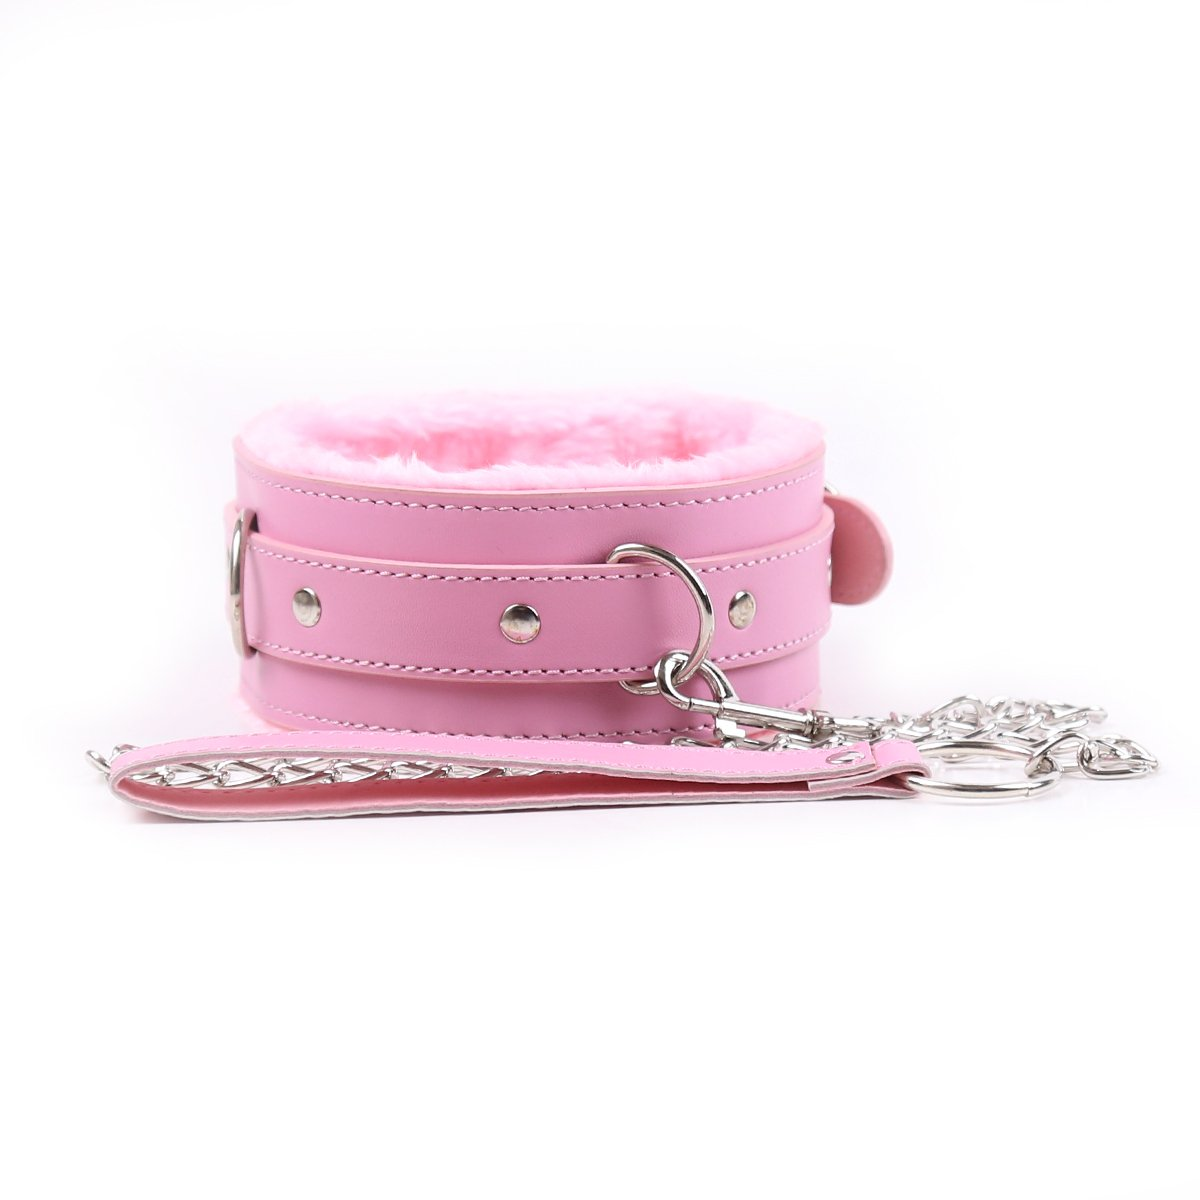 DERENHER Adjustable Faux Fur Lined Choker Pink Pvc Leather Neck Collar and Leash Kit (Pink) by DERENHER (Image #2)